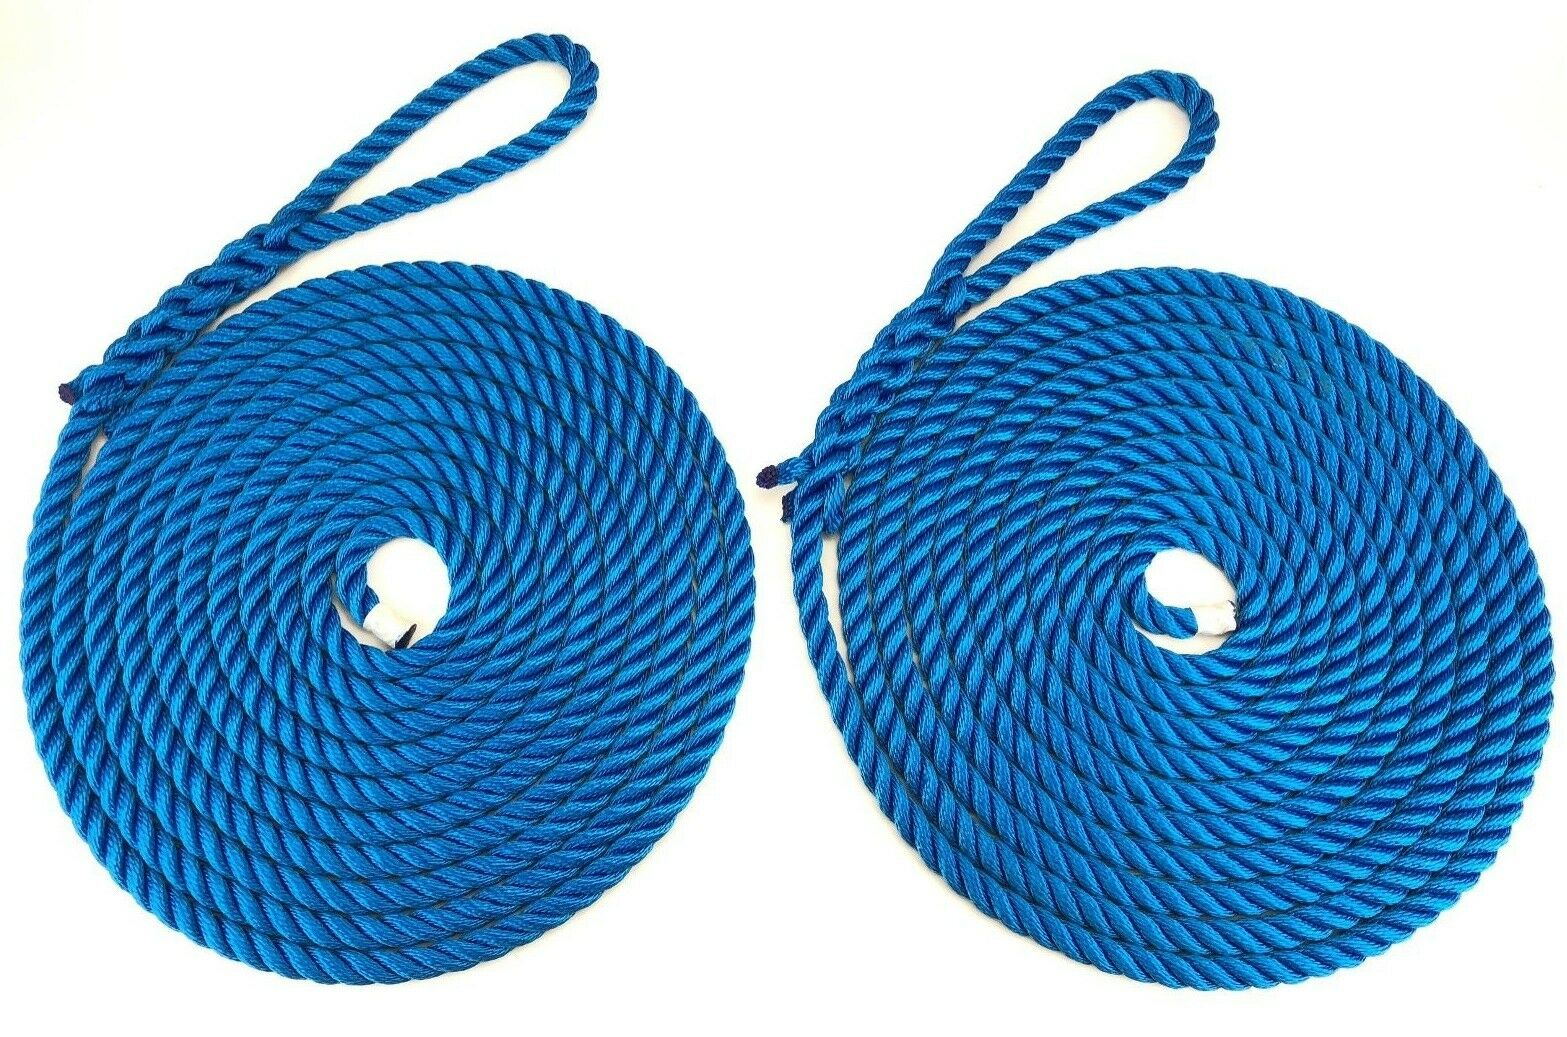 2 x 18 Metres of 14mm Royal bluee Mooring Ropes. Warps, Boat Lines, Yachts, Canal